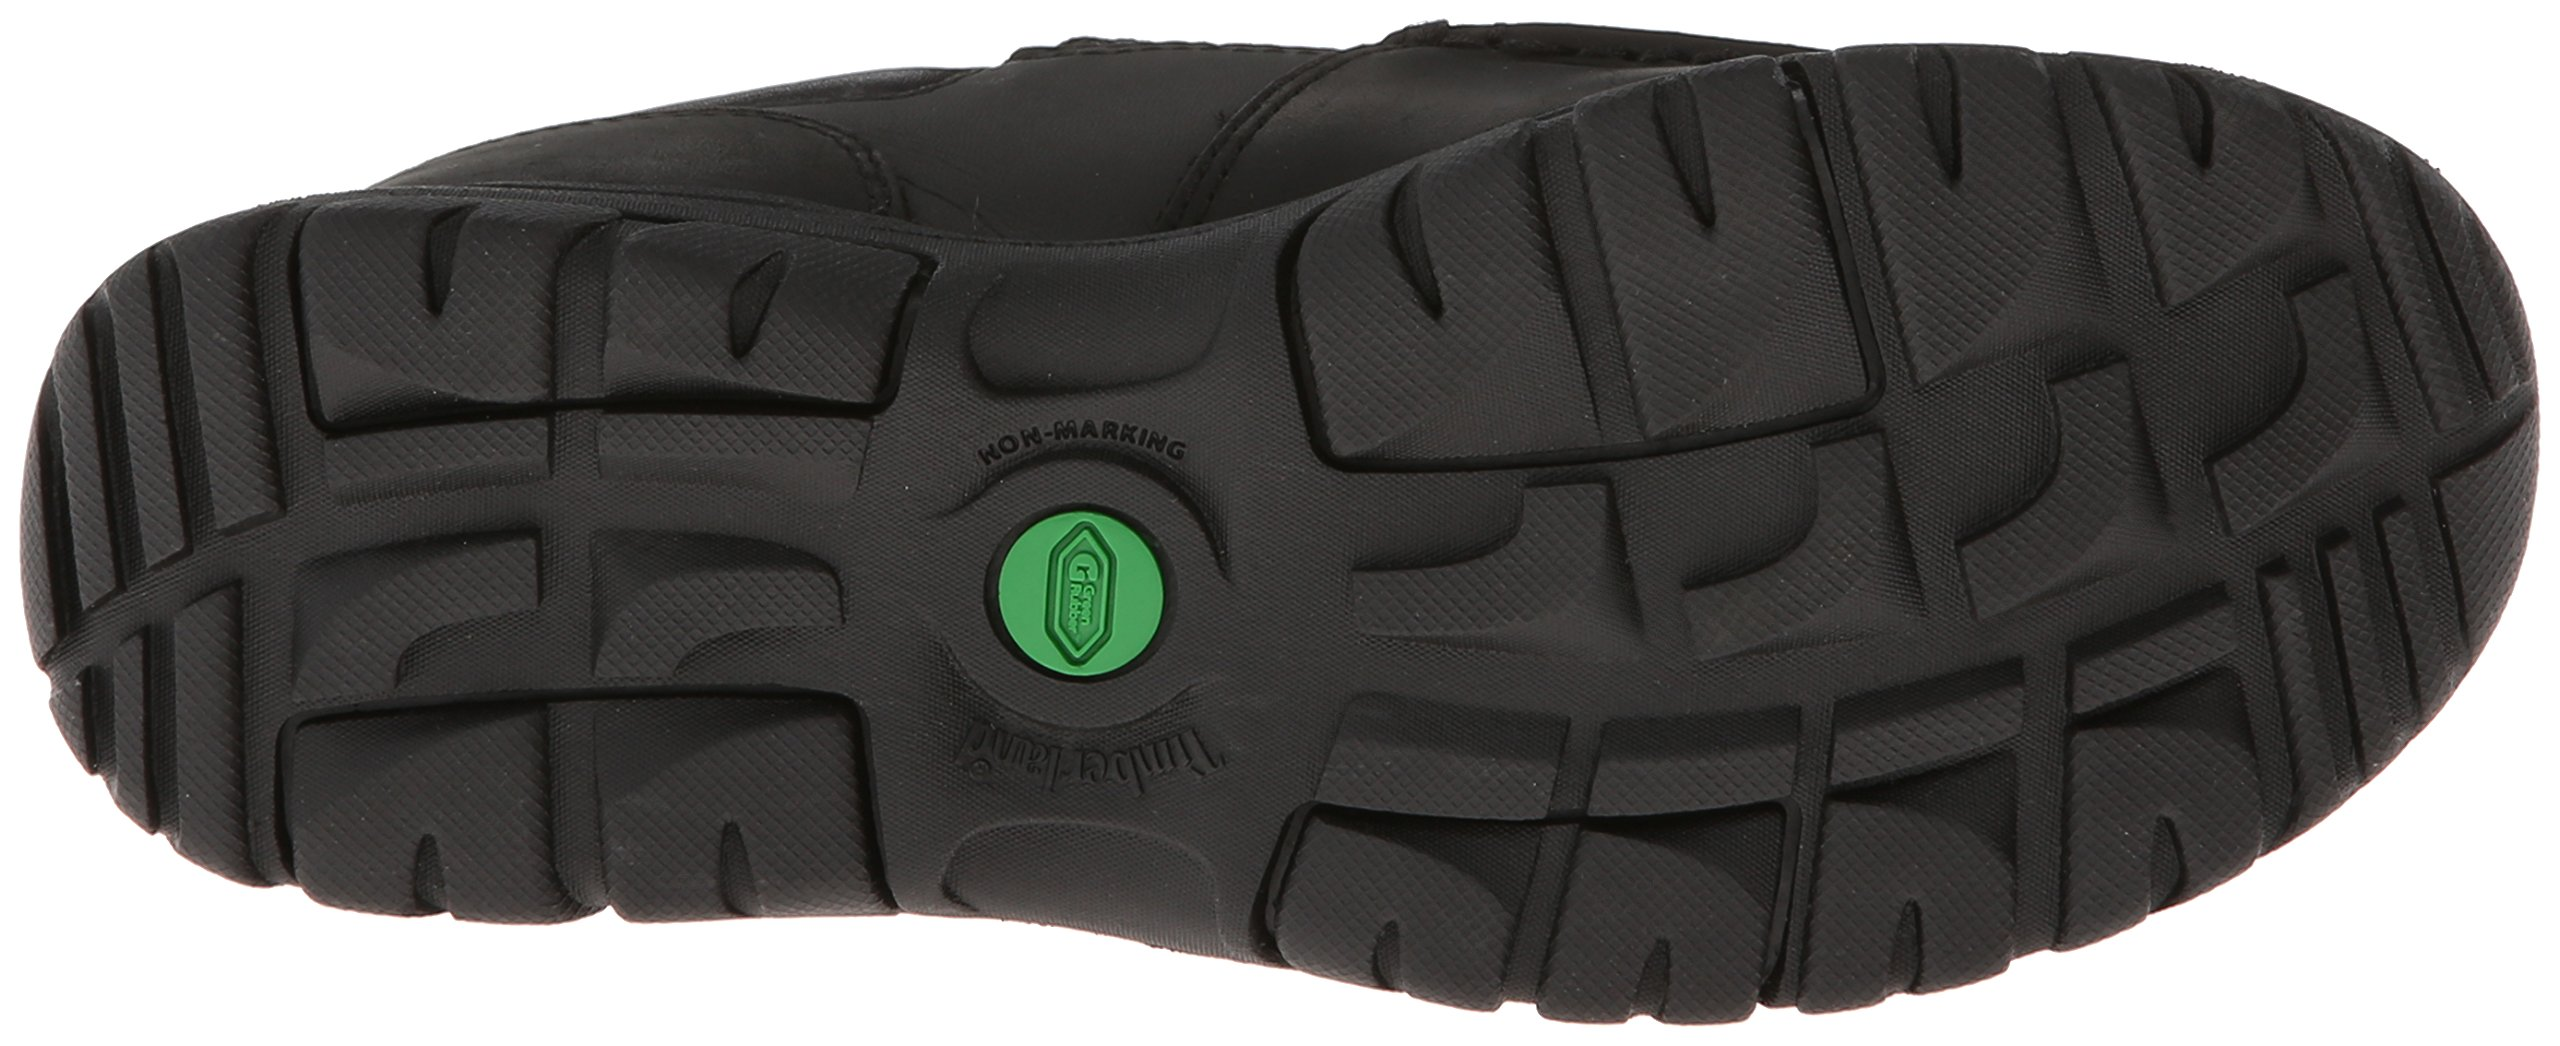 Timberland Discovery Pass Moc Toe Moc Toe Slip-On (Toddler/Little Kid/Big Kid),Black,9.5 M US Toddler by Timberland (Image #3)